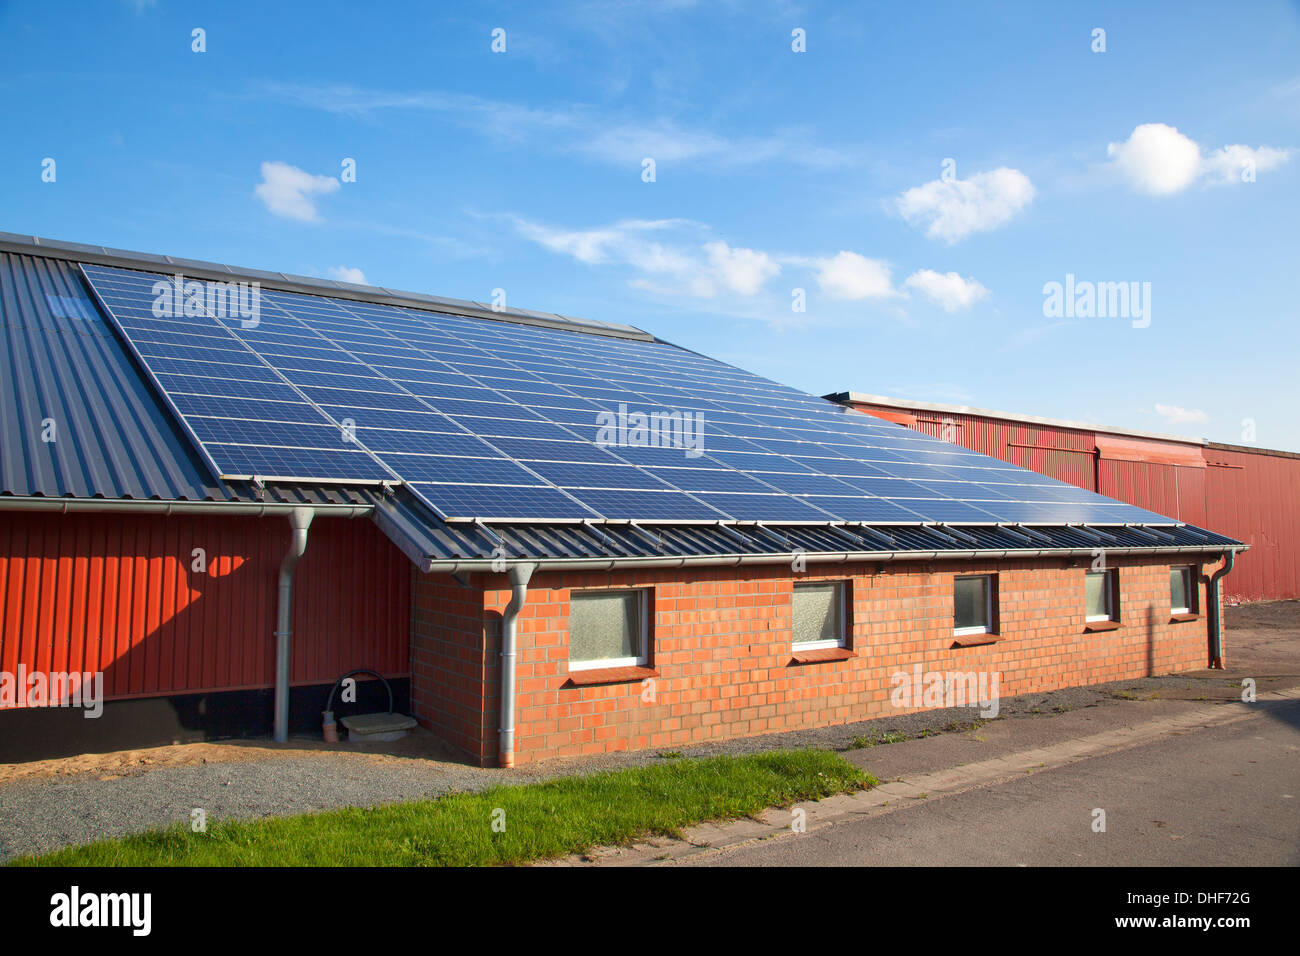 Solar Kiel Solar Panel Roof Building Stock Photos & Solar Panel Roof